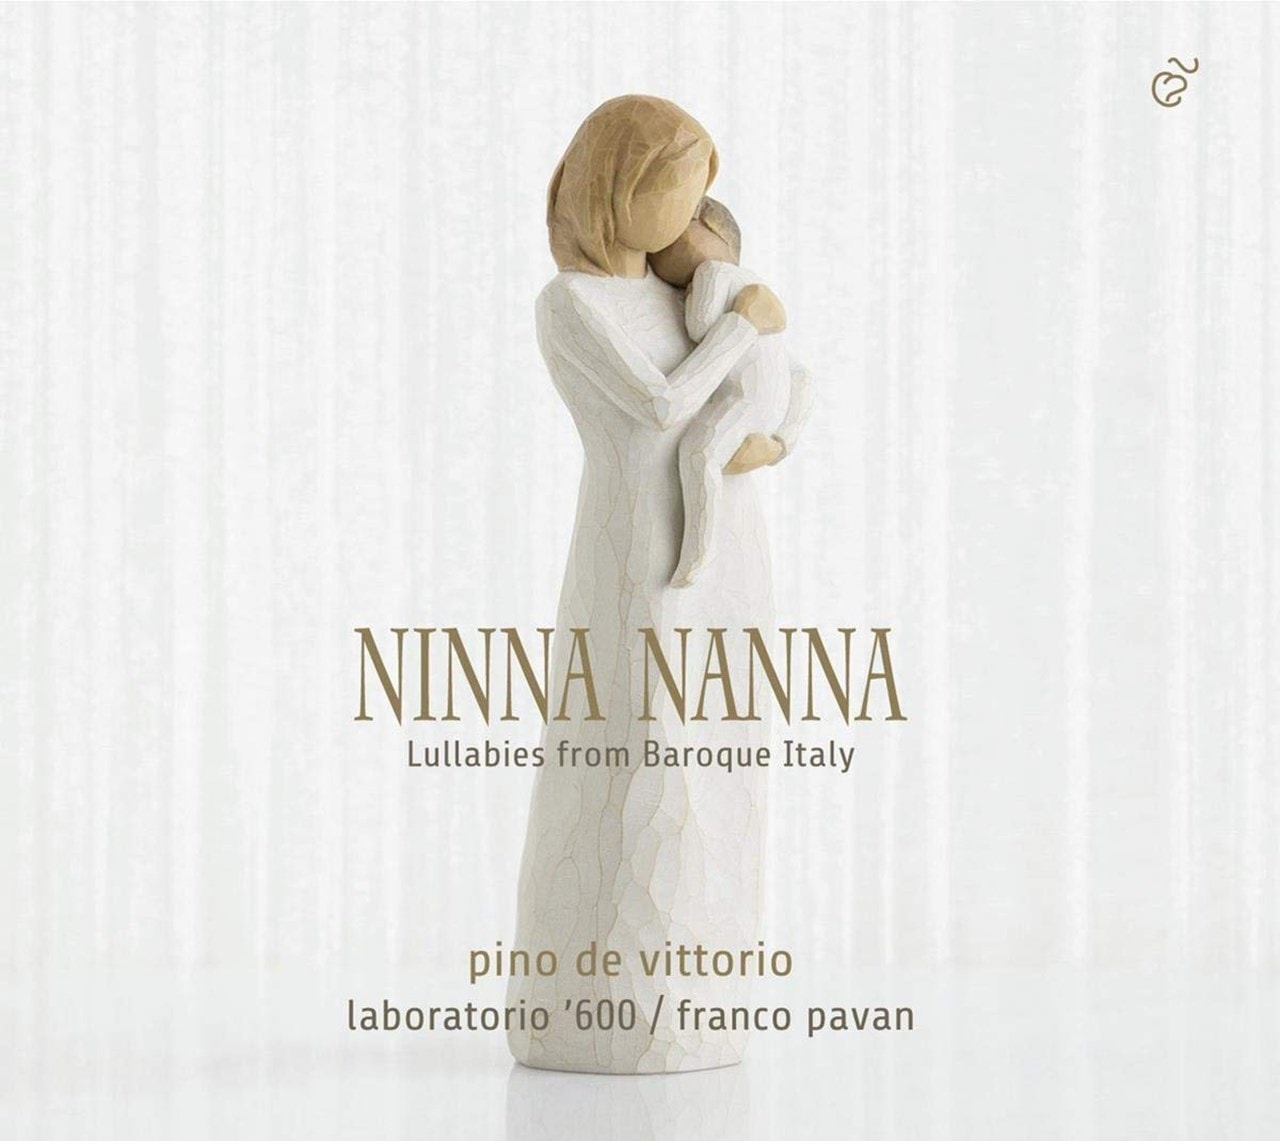 Ninna Nanna: Lullabies from Baroque Italy - 1